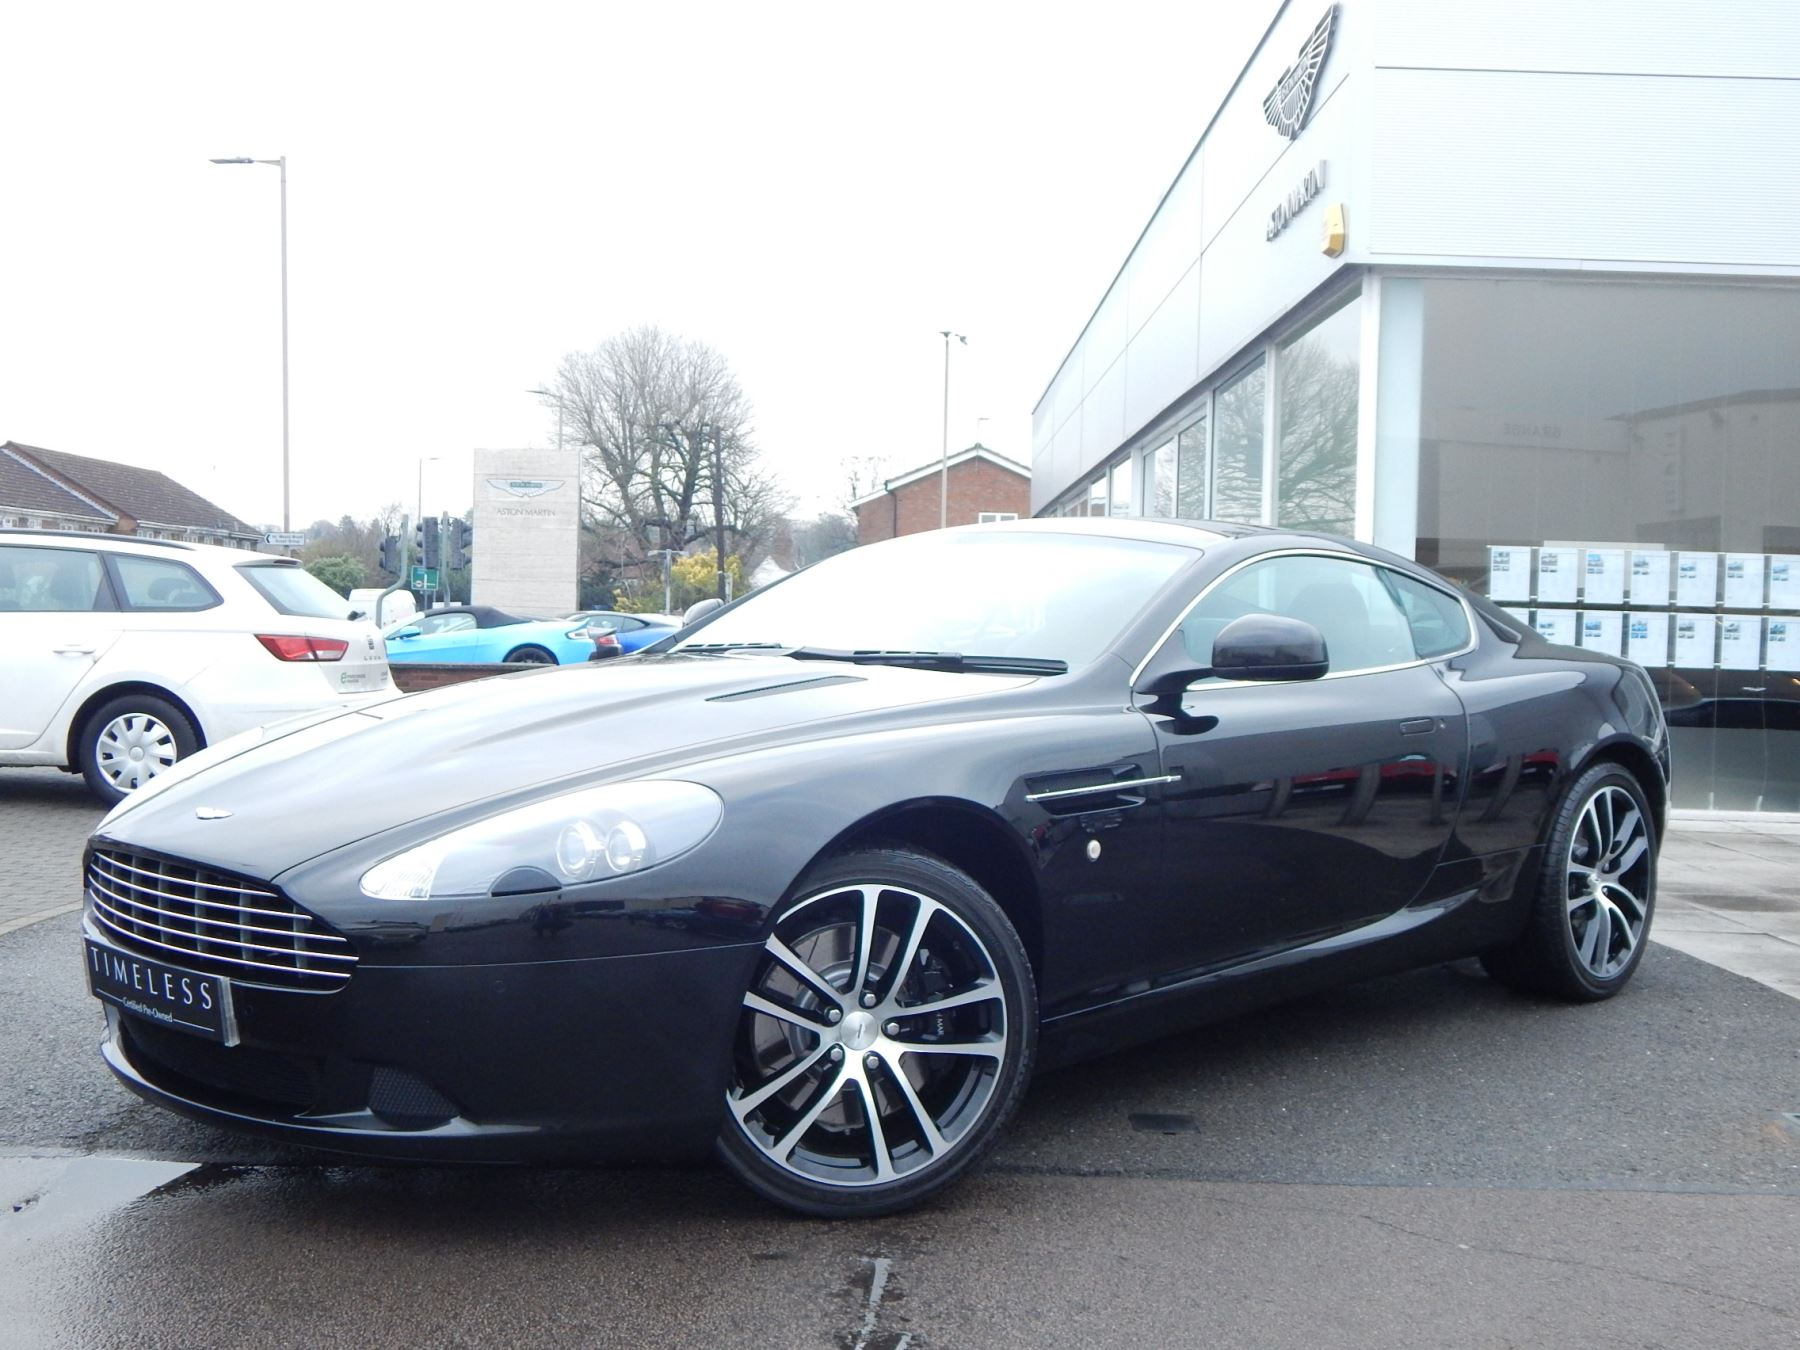 Aston Martin DB9 V12 2dr Touchtronic [470] 5.9 Automatic Coupe (2012) image